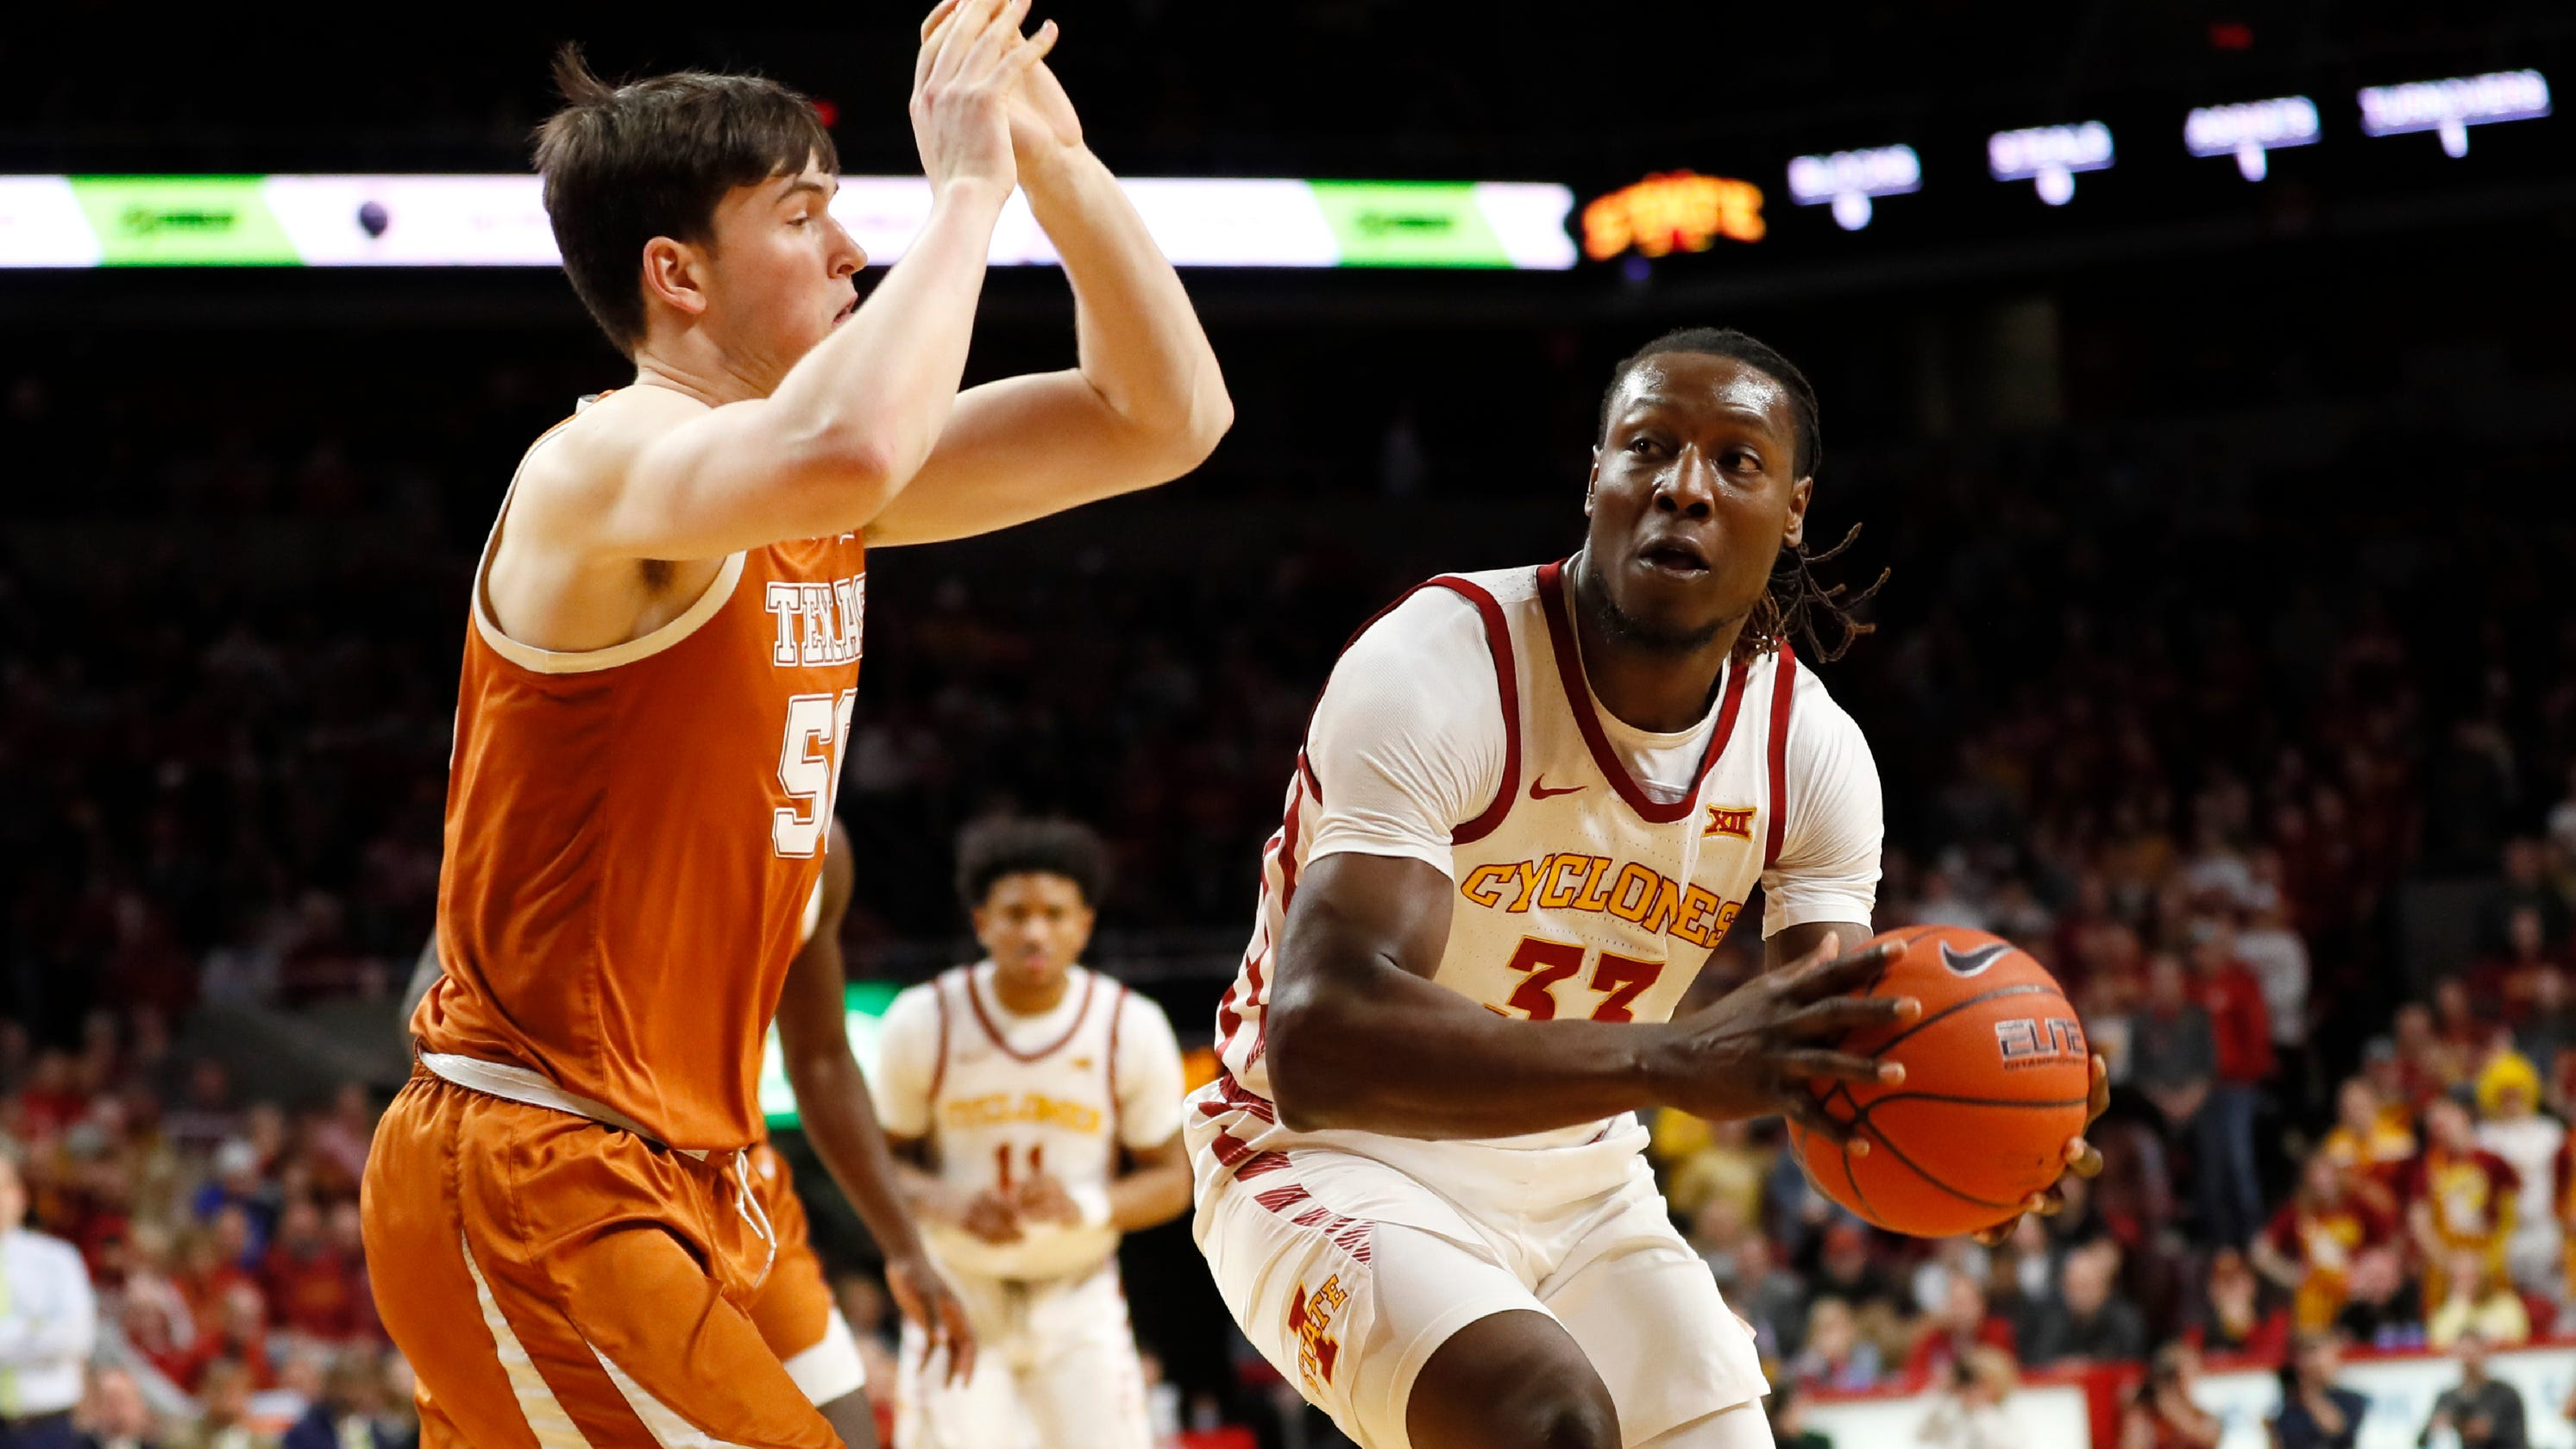 Hines: Cyclones find a 40-minute oasis during difficult season